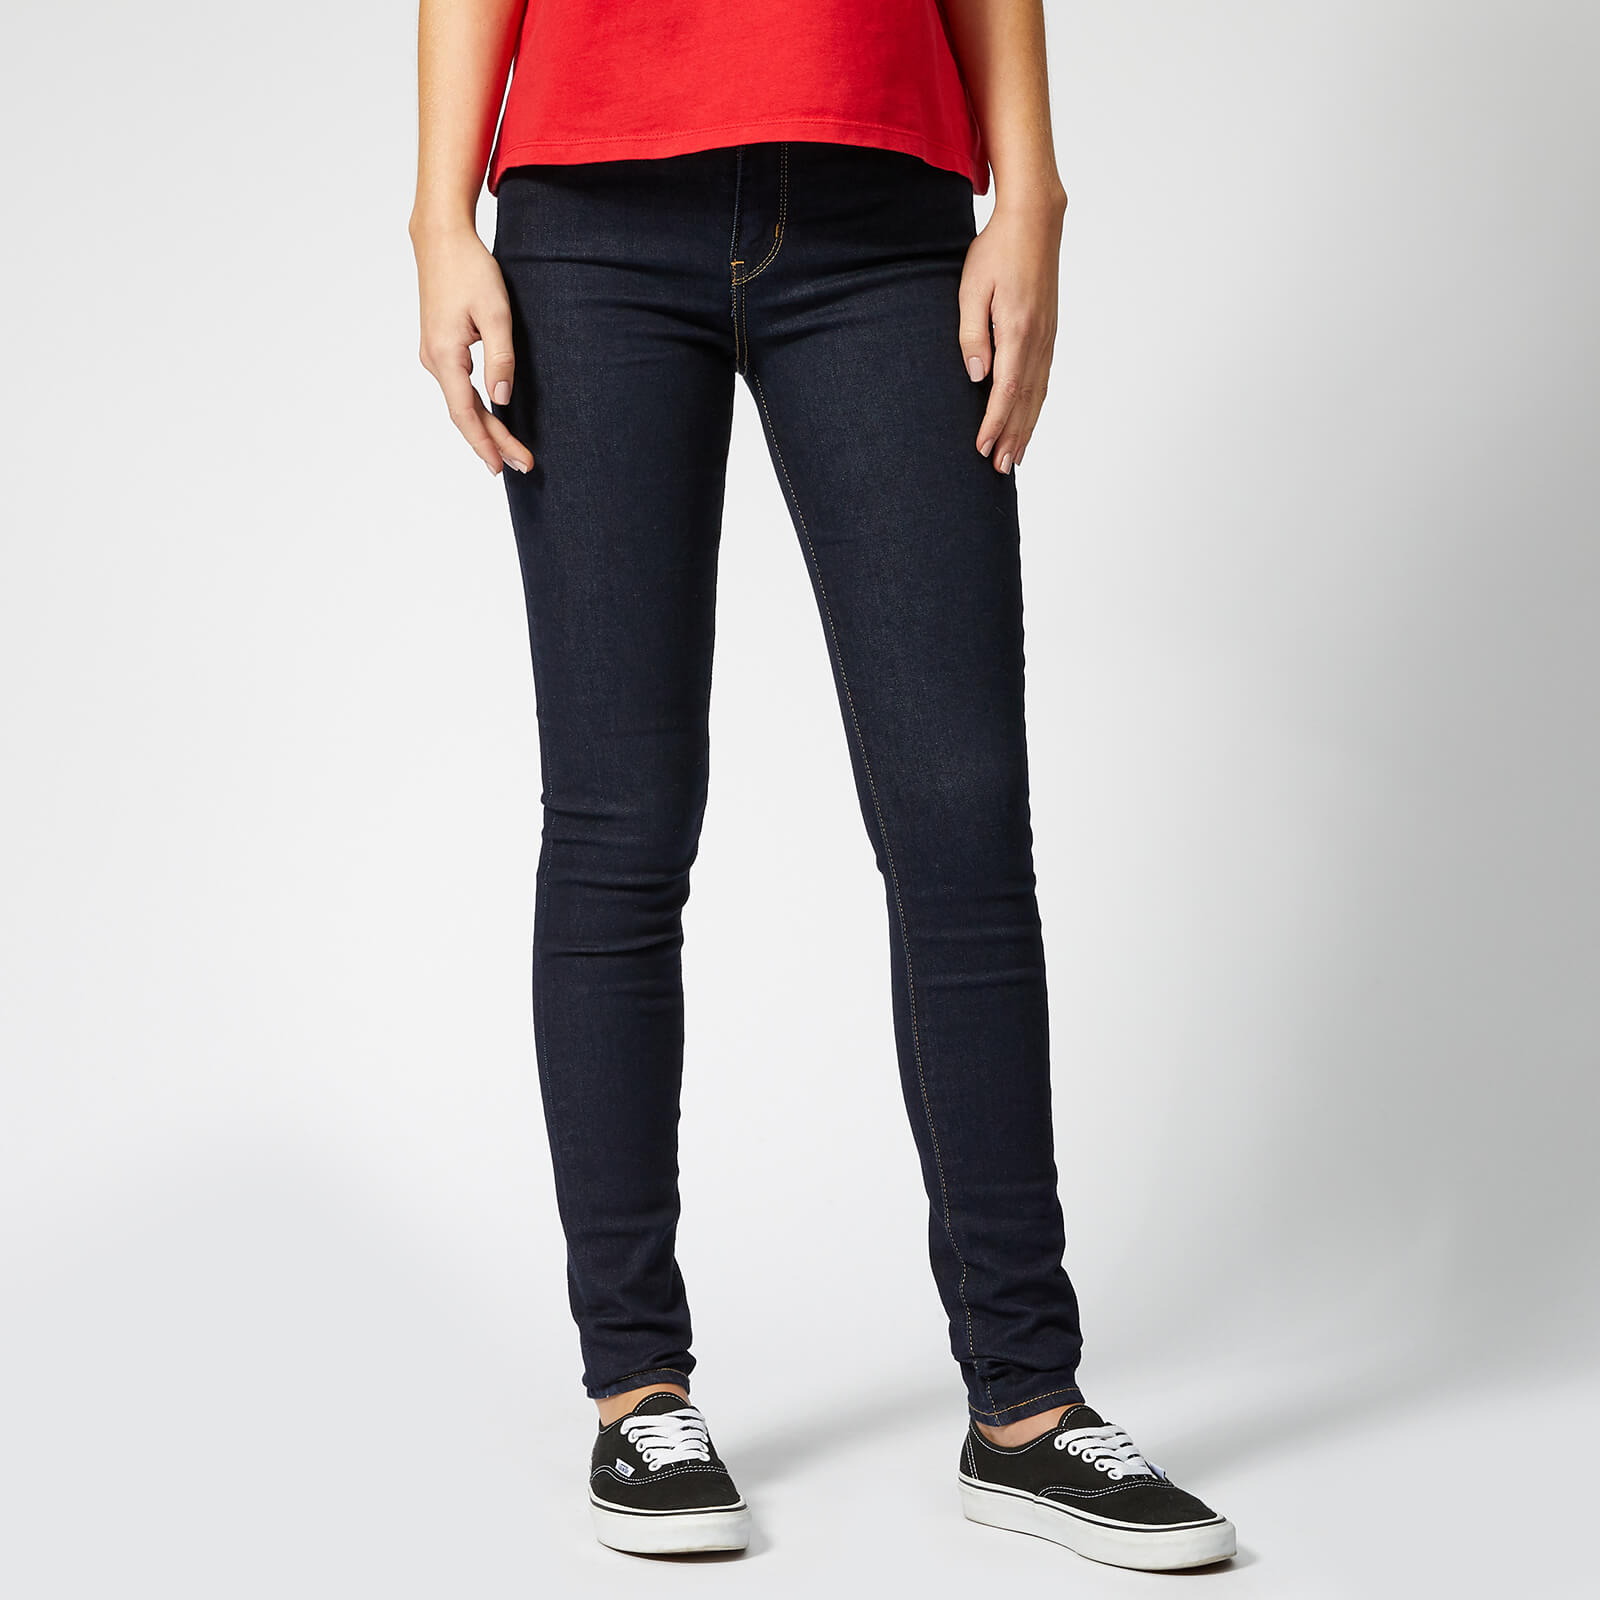 0daed0f9 Levi's Women's 721 High Rise Skinny Jeans - To The Nine Clothing ...